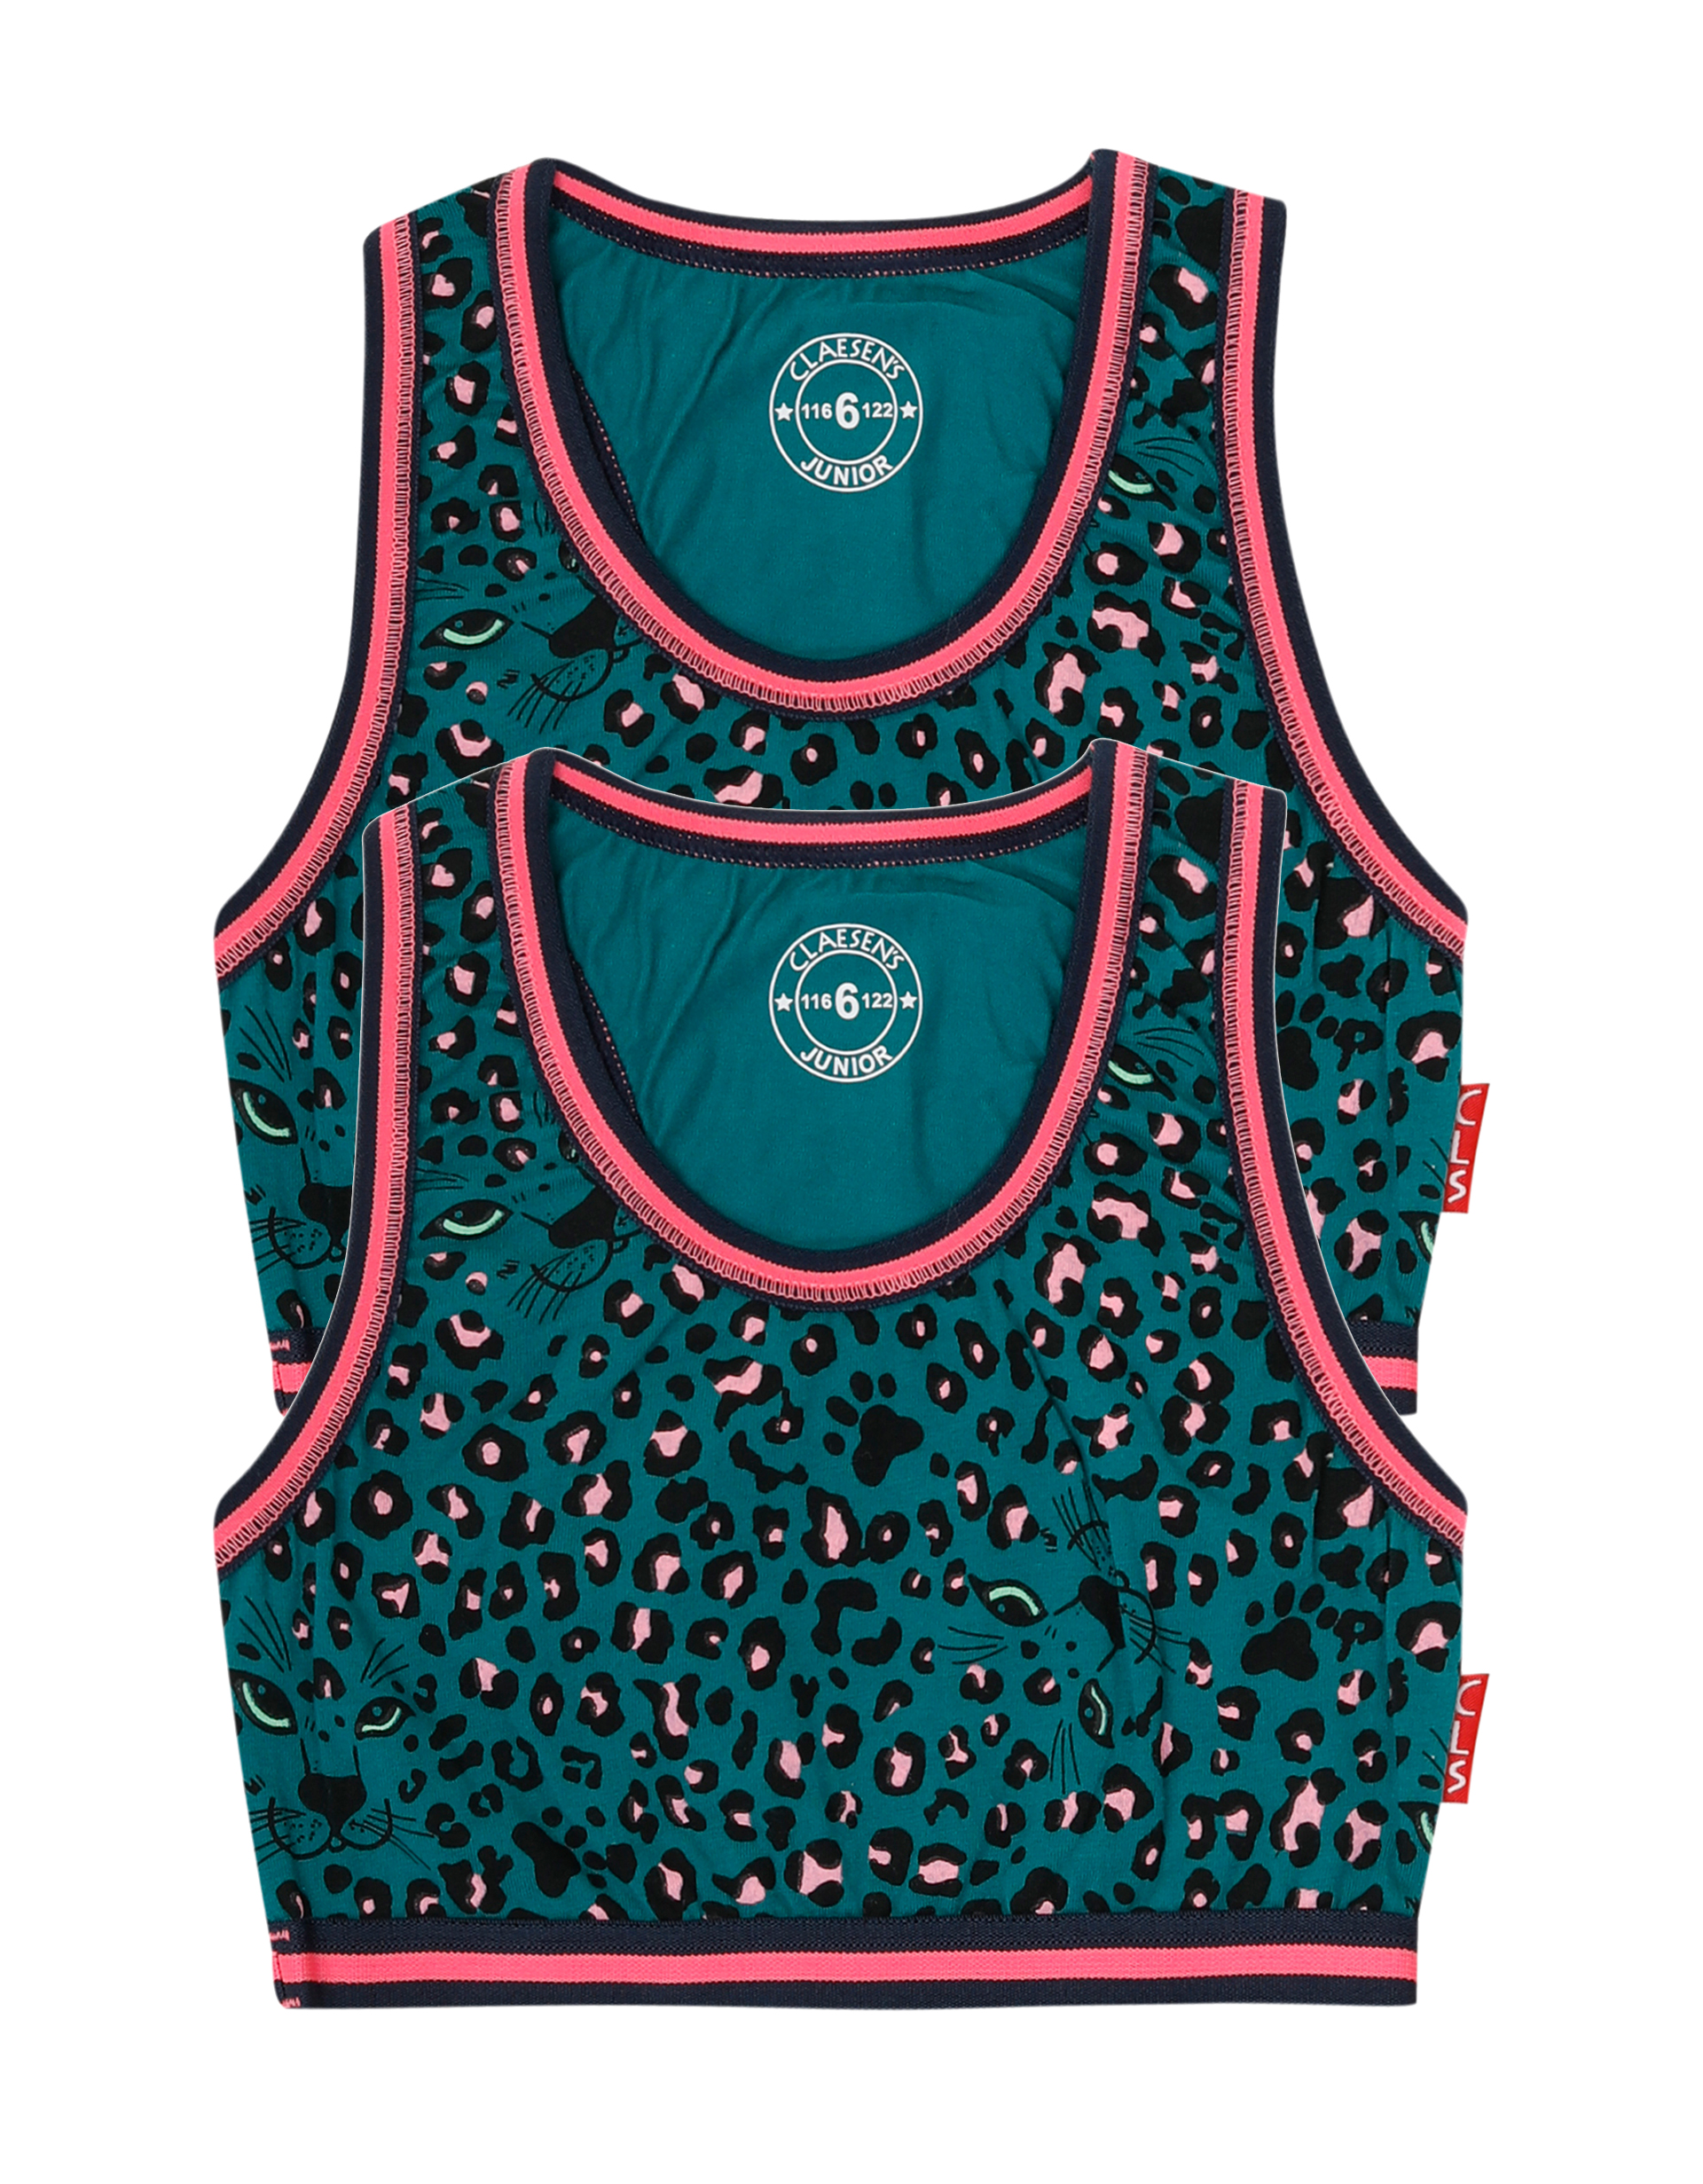 Bralette 2-pack Green Panther